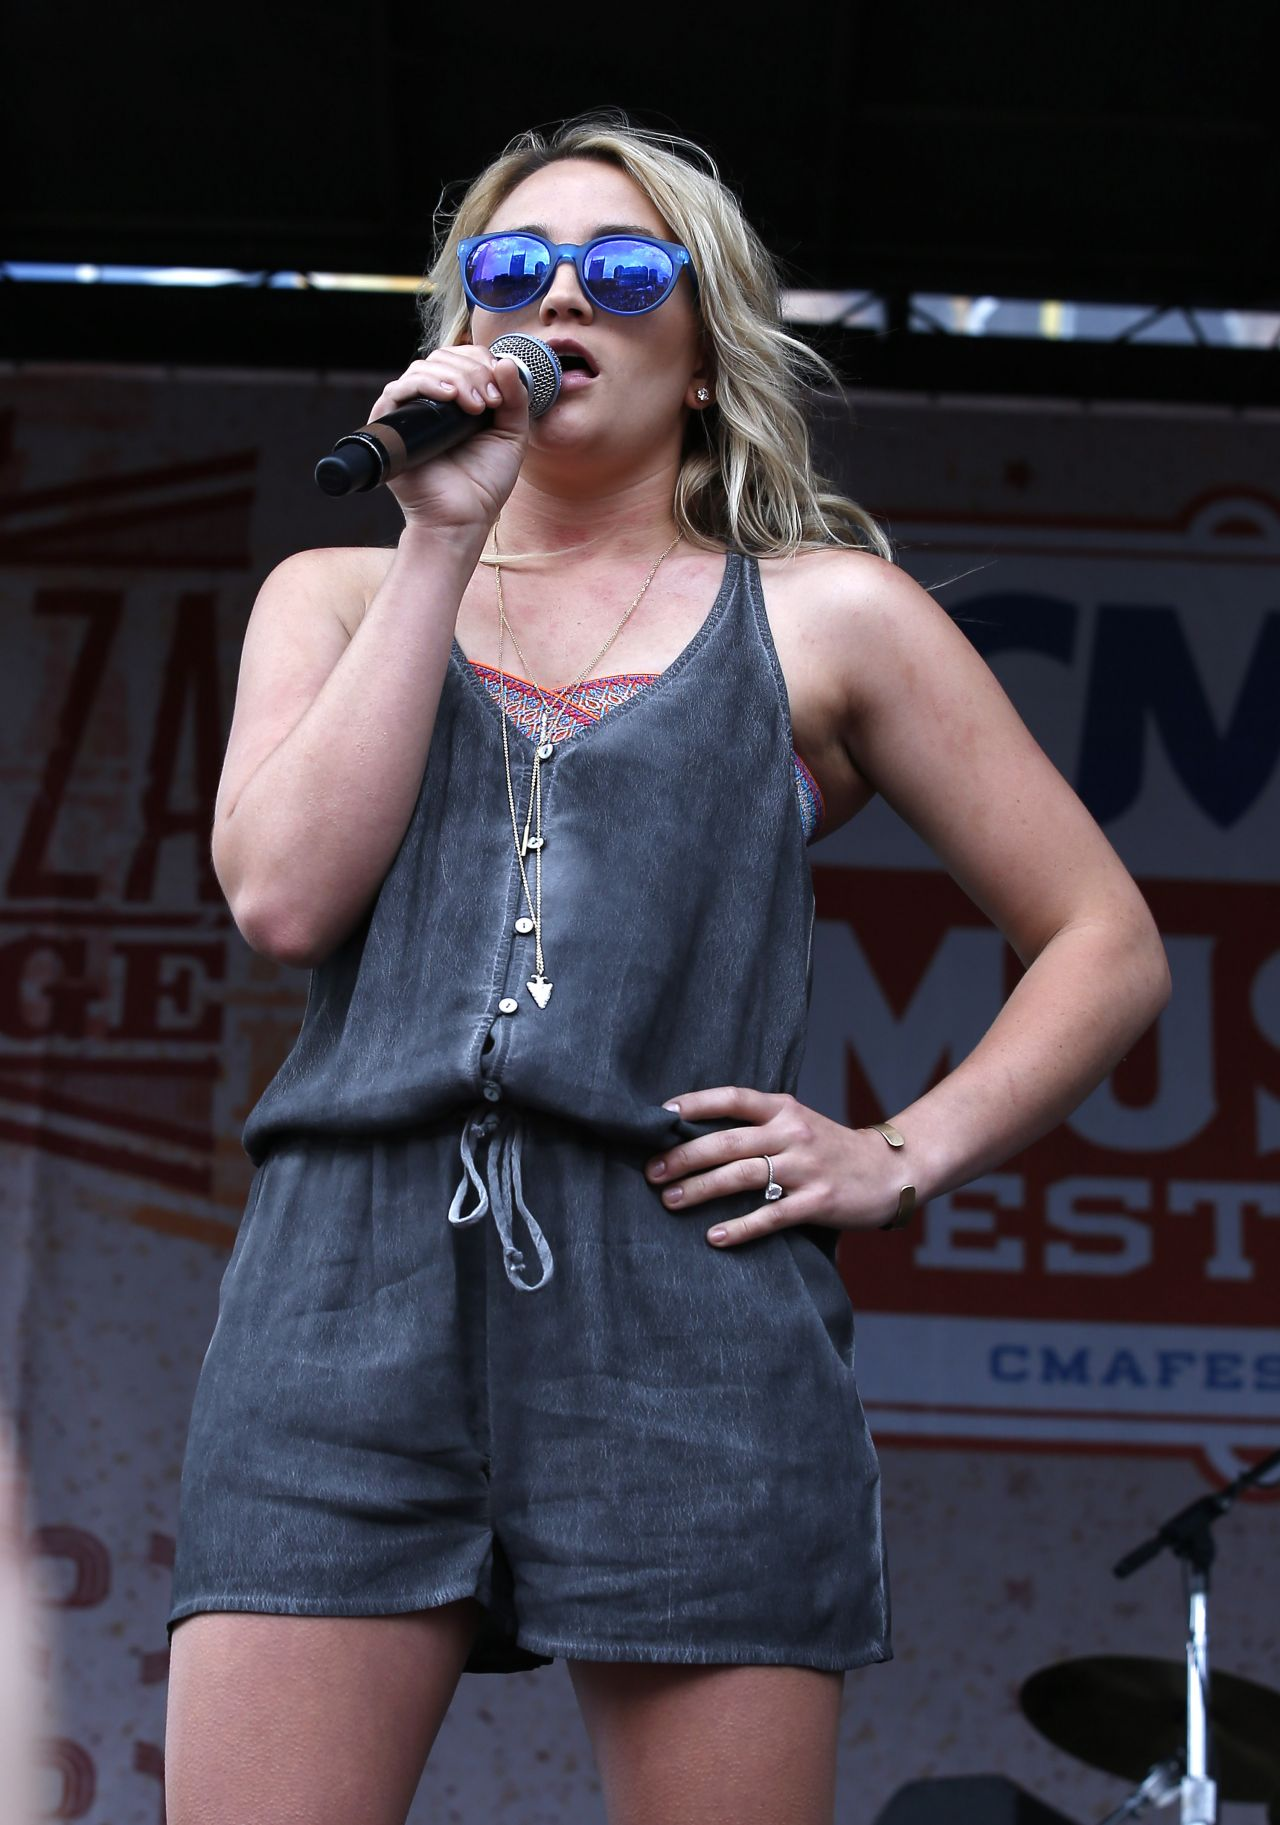 Jamie Lynn Spears Performs On The Bud Light Plaza Stage